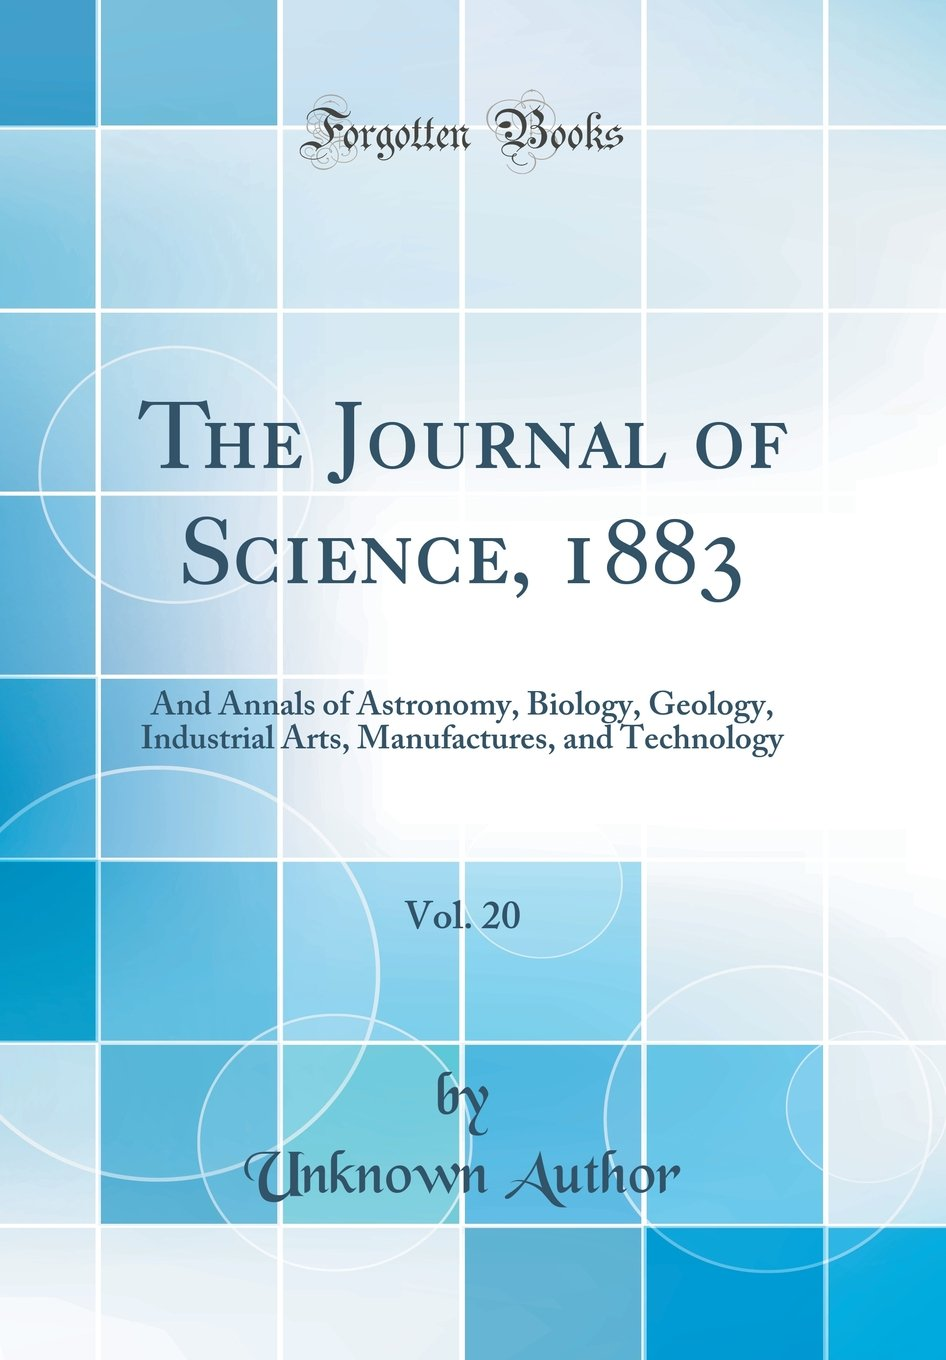 Download The Journal of Science, 1883, Vol. 20: And Annals of Astronomy, Biology, Geology, Industrial Arts, Manufactures, and Technology (Classic Reprint) ebook